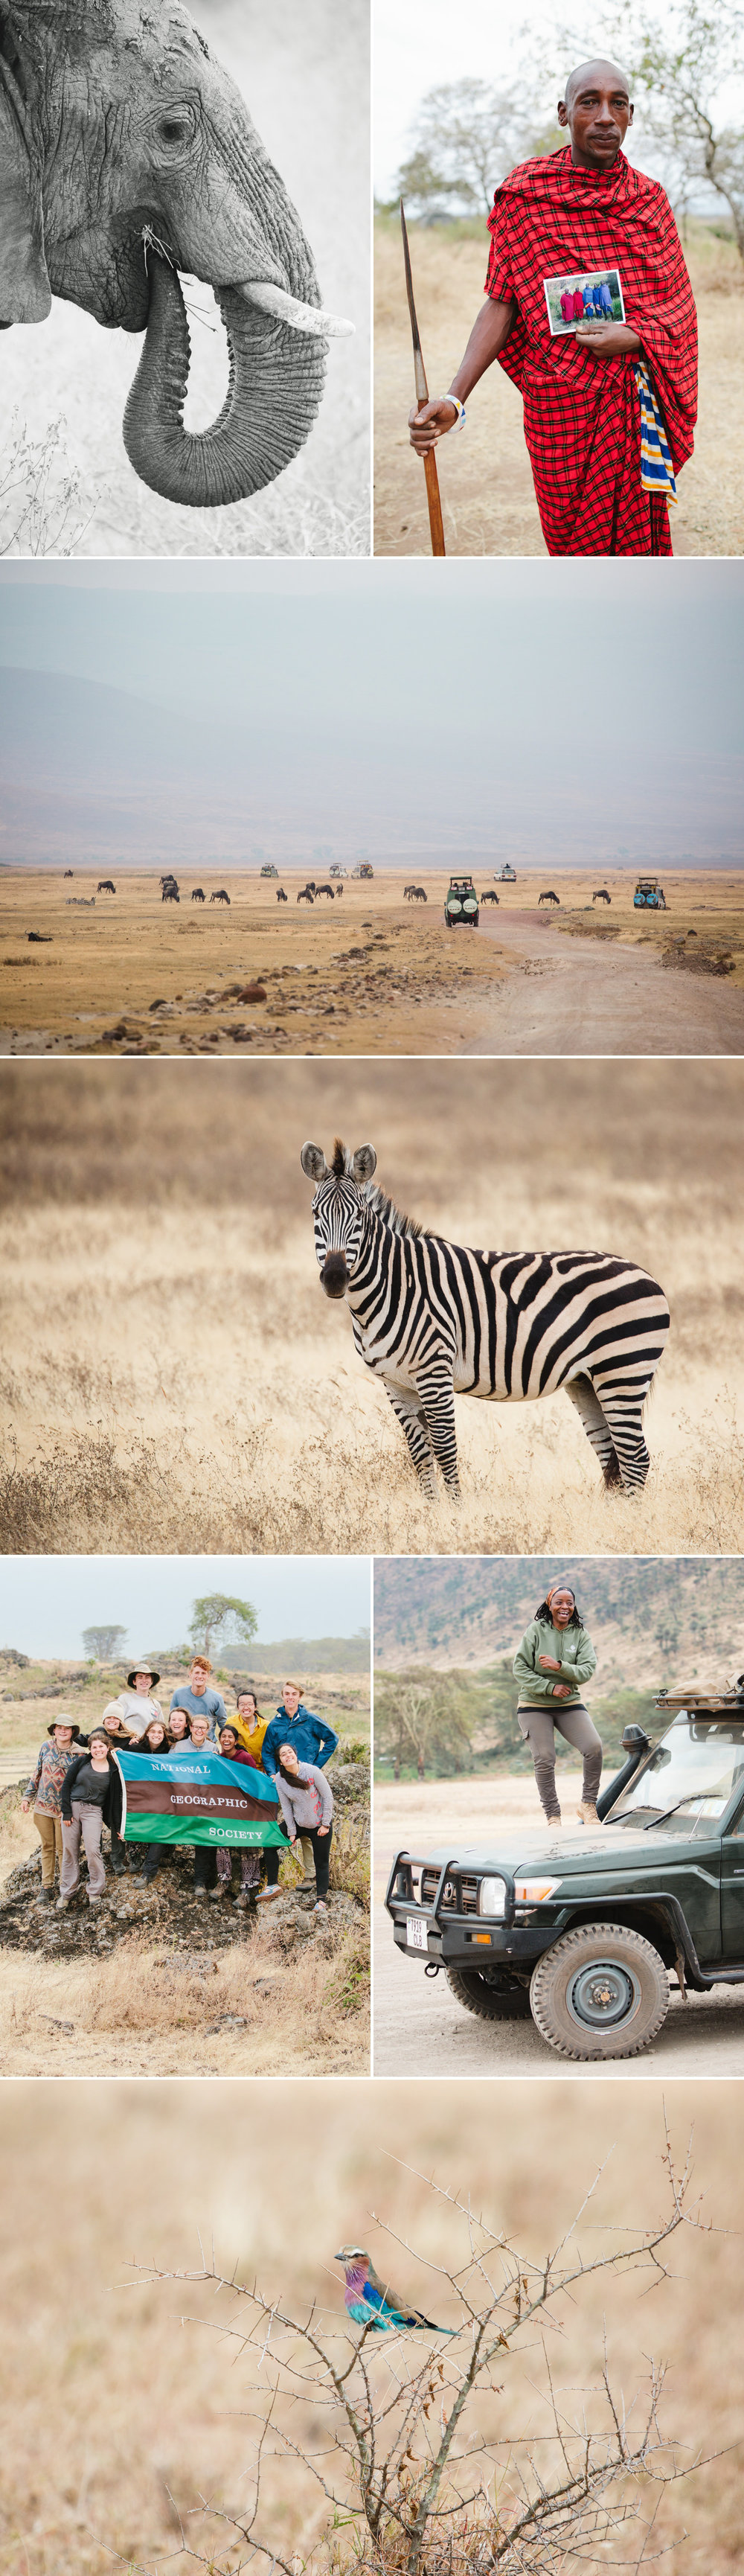 cameron-zegers-photography-travel-tanzania-national-geographic-seattle-14.jpg